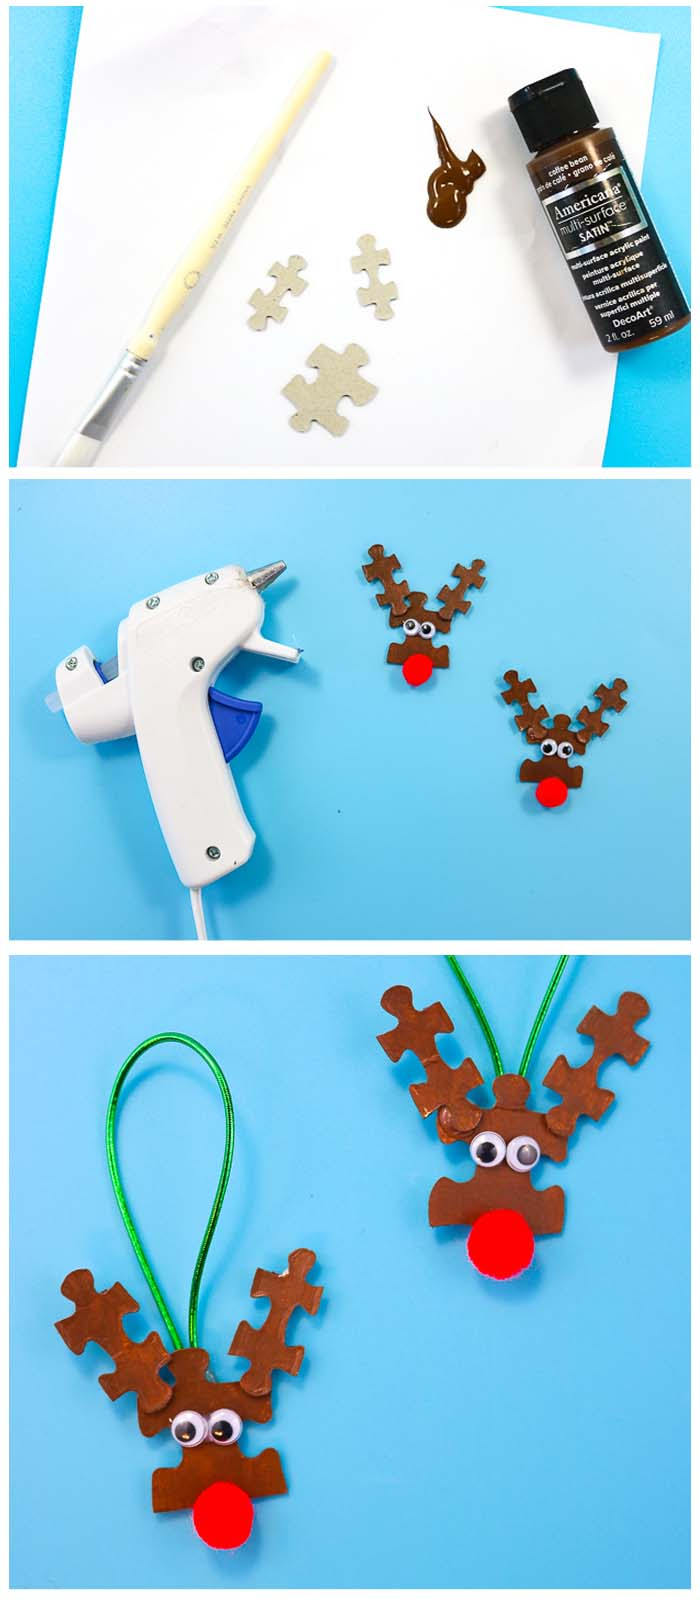 3 photos of step by steps to make reindeer ornaments from puzzle pieces